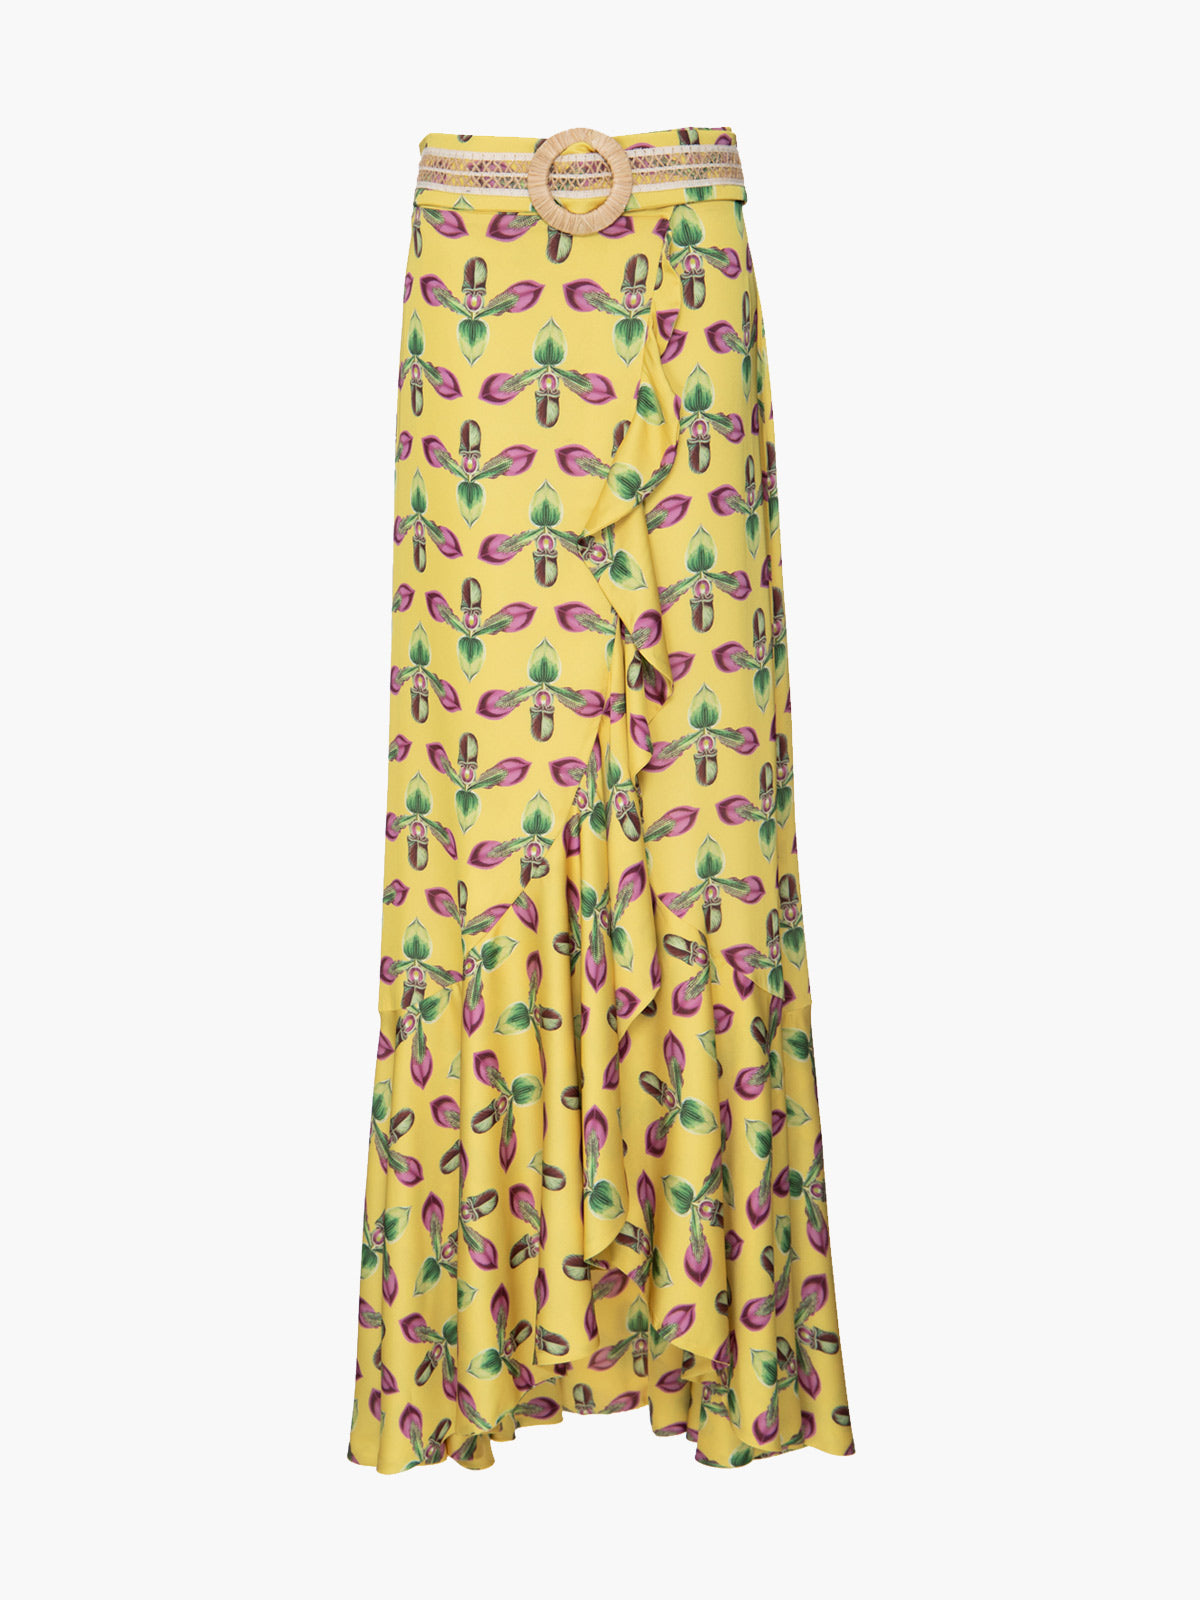 Printed Maxi Wrap Skirt | Bright Yellow